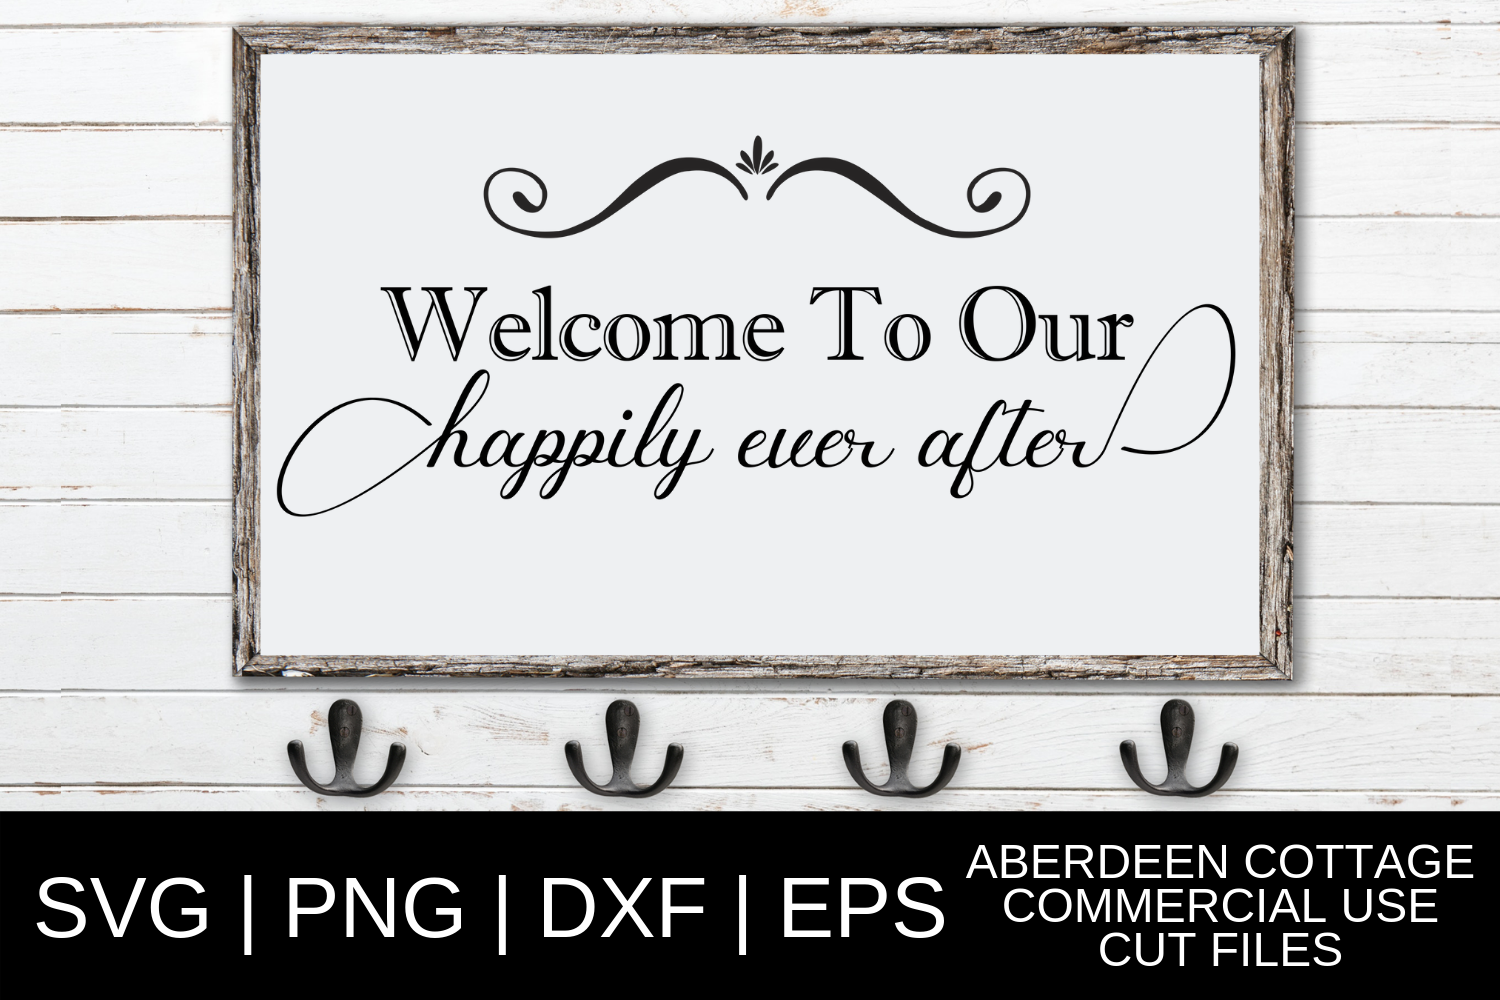 Welcome To Our Happily Ever After SVG, PNG, DXF & EPS Design example image 3